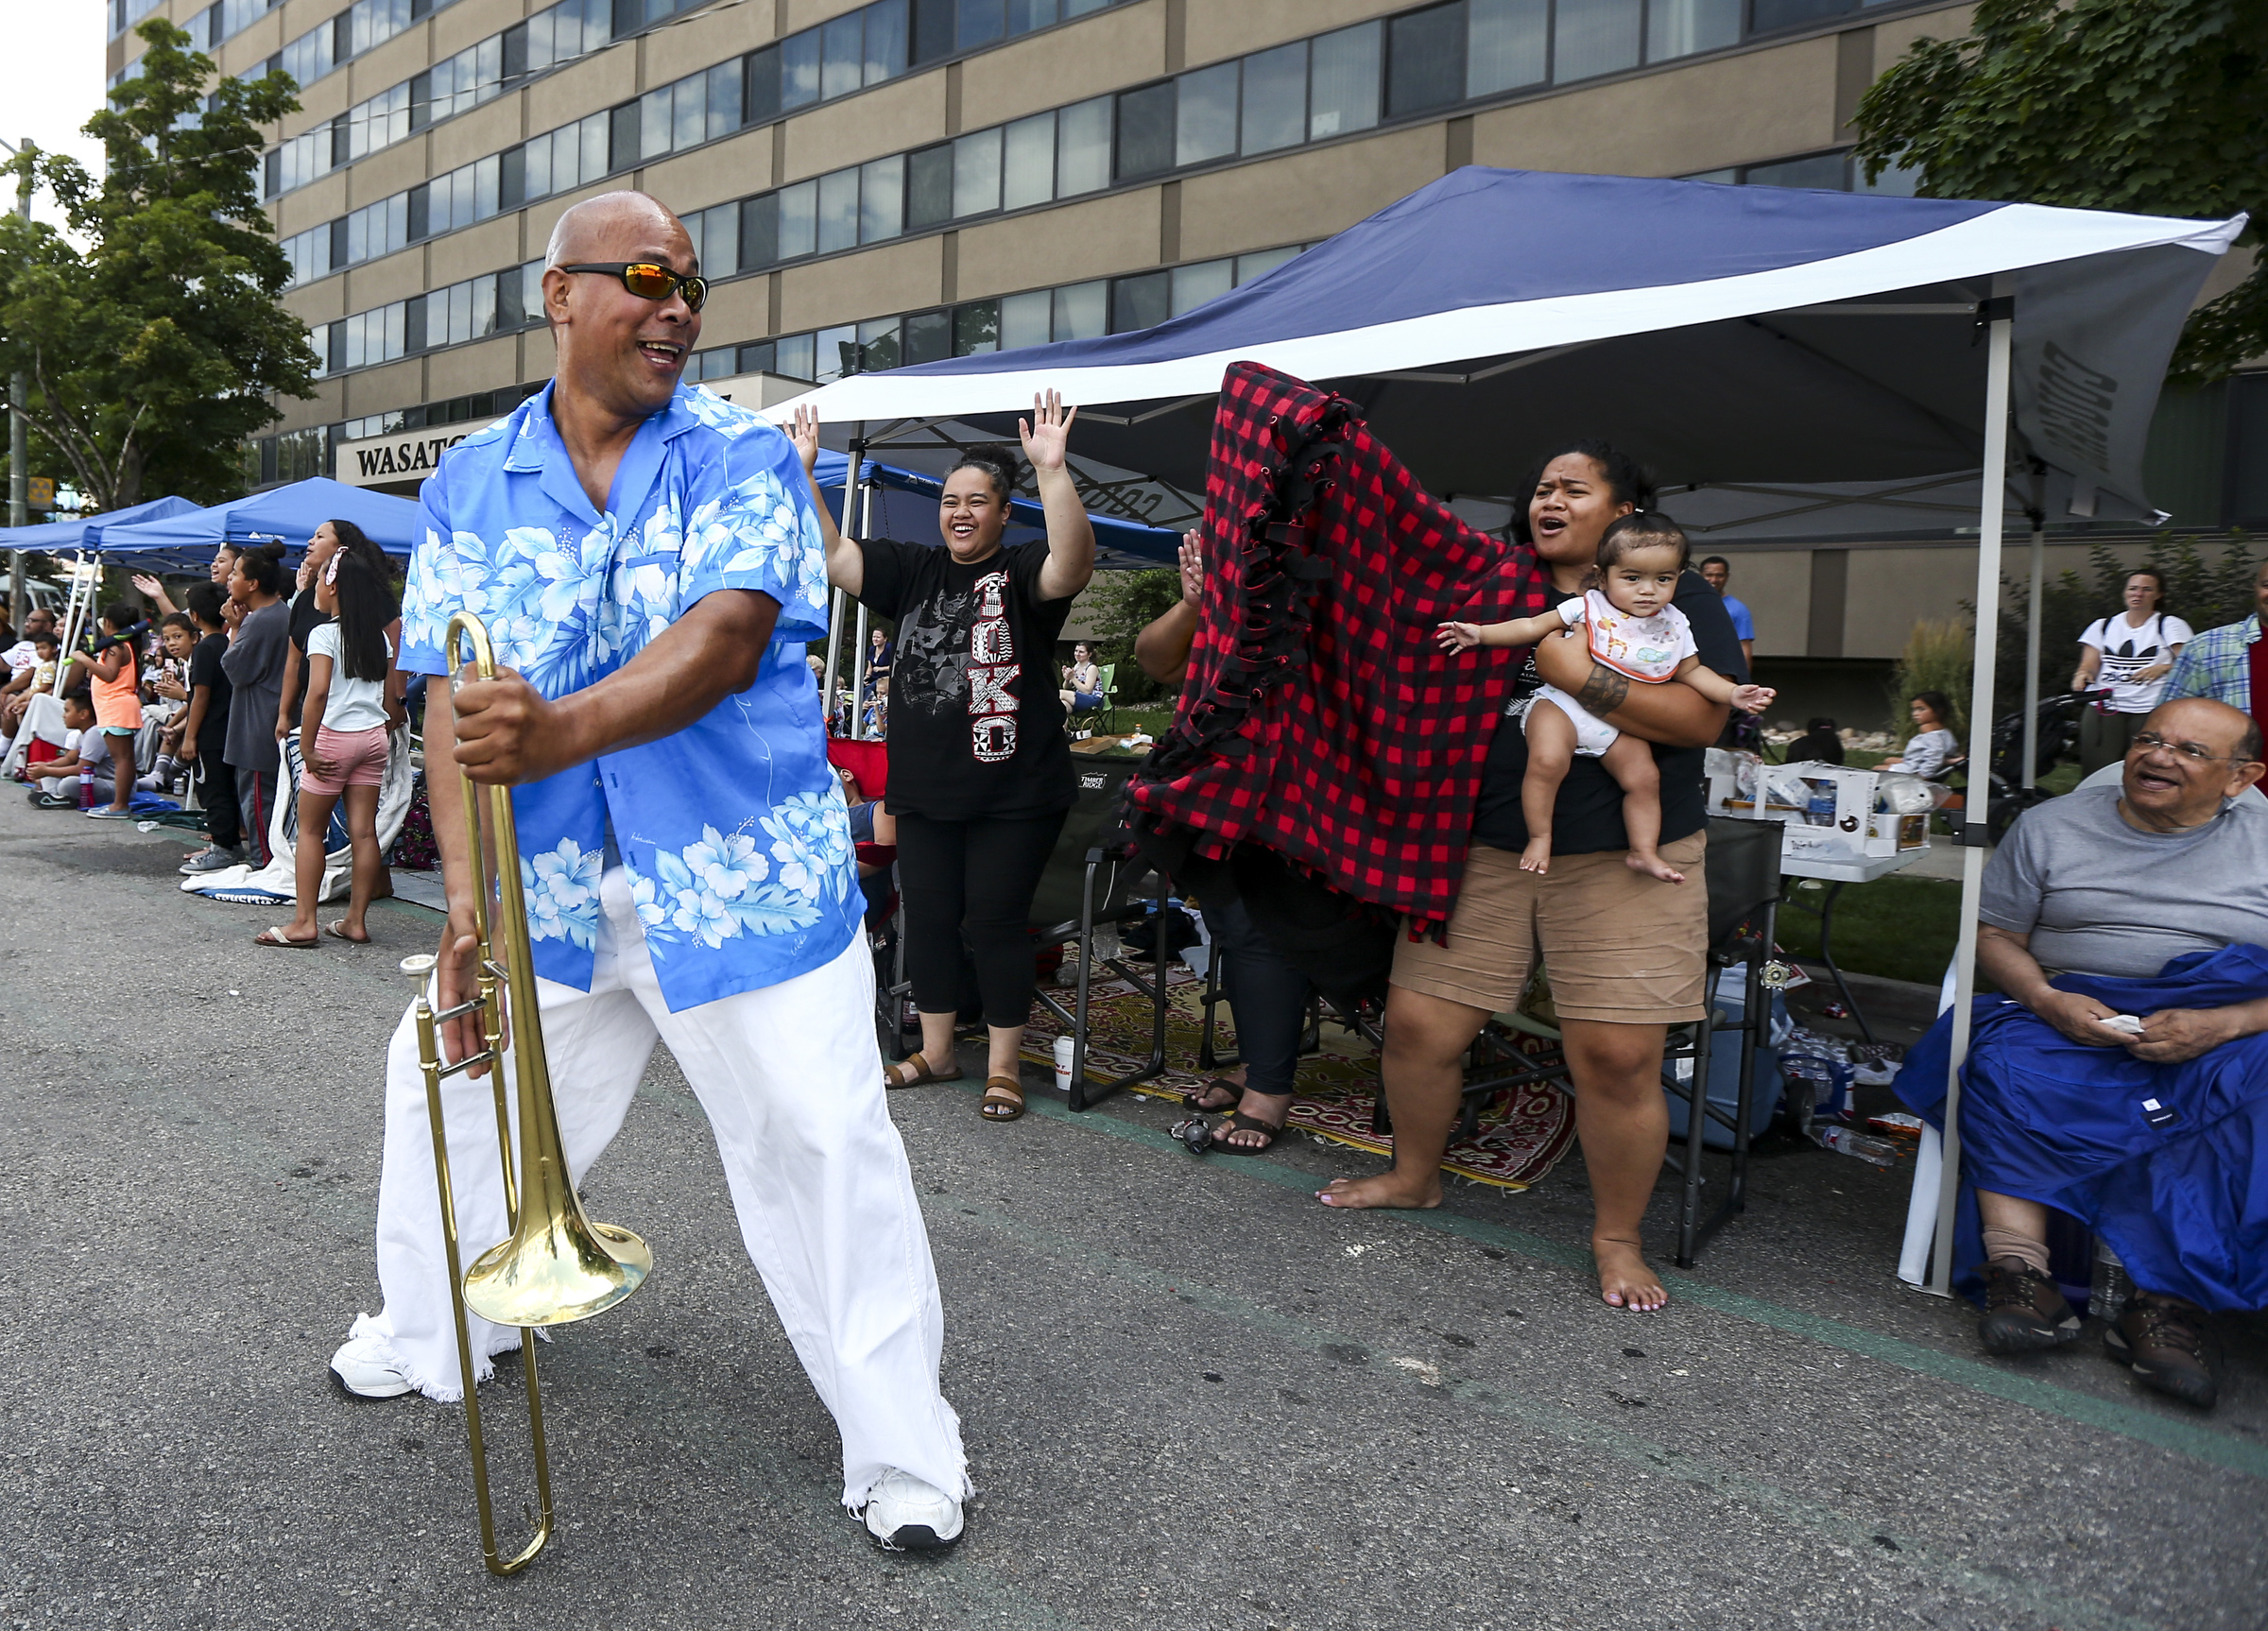 To a Naivalca with the Liahona Alumni Band shakes it for a few parade goers during the Days of 47 Parade in Downtown Salt Lake City on Wednesday, July 24, 2019.